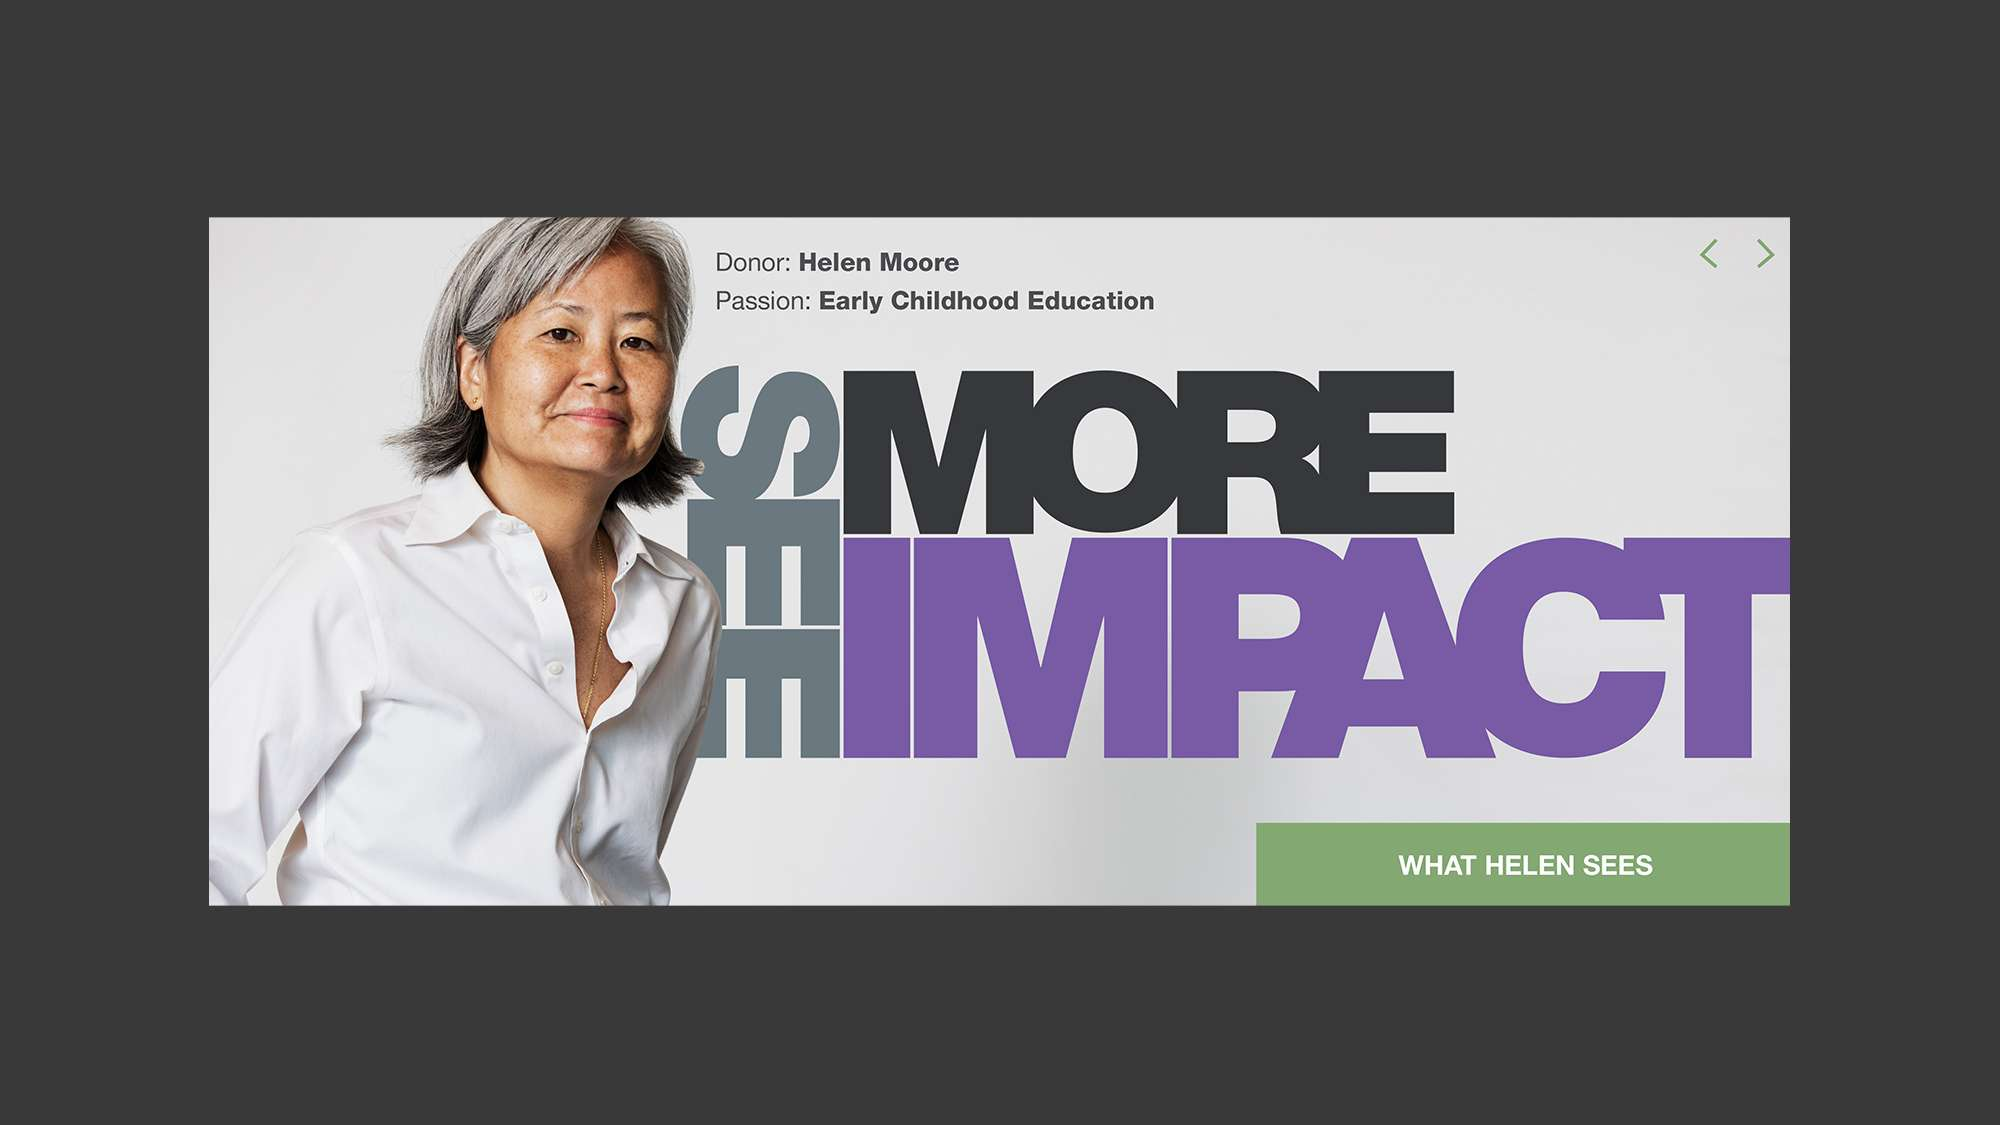 See more impact. Portrait of donor, Helen Moore.